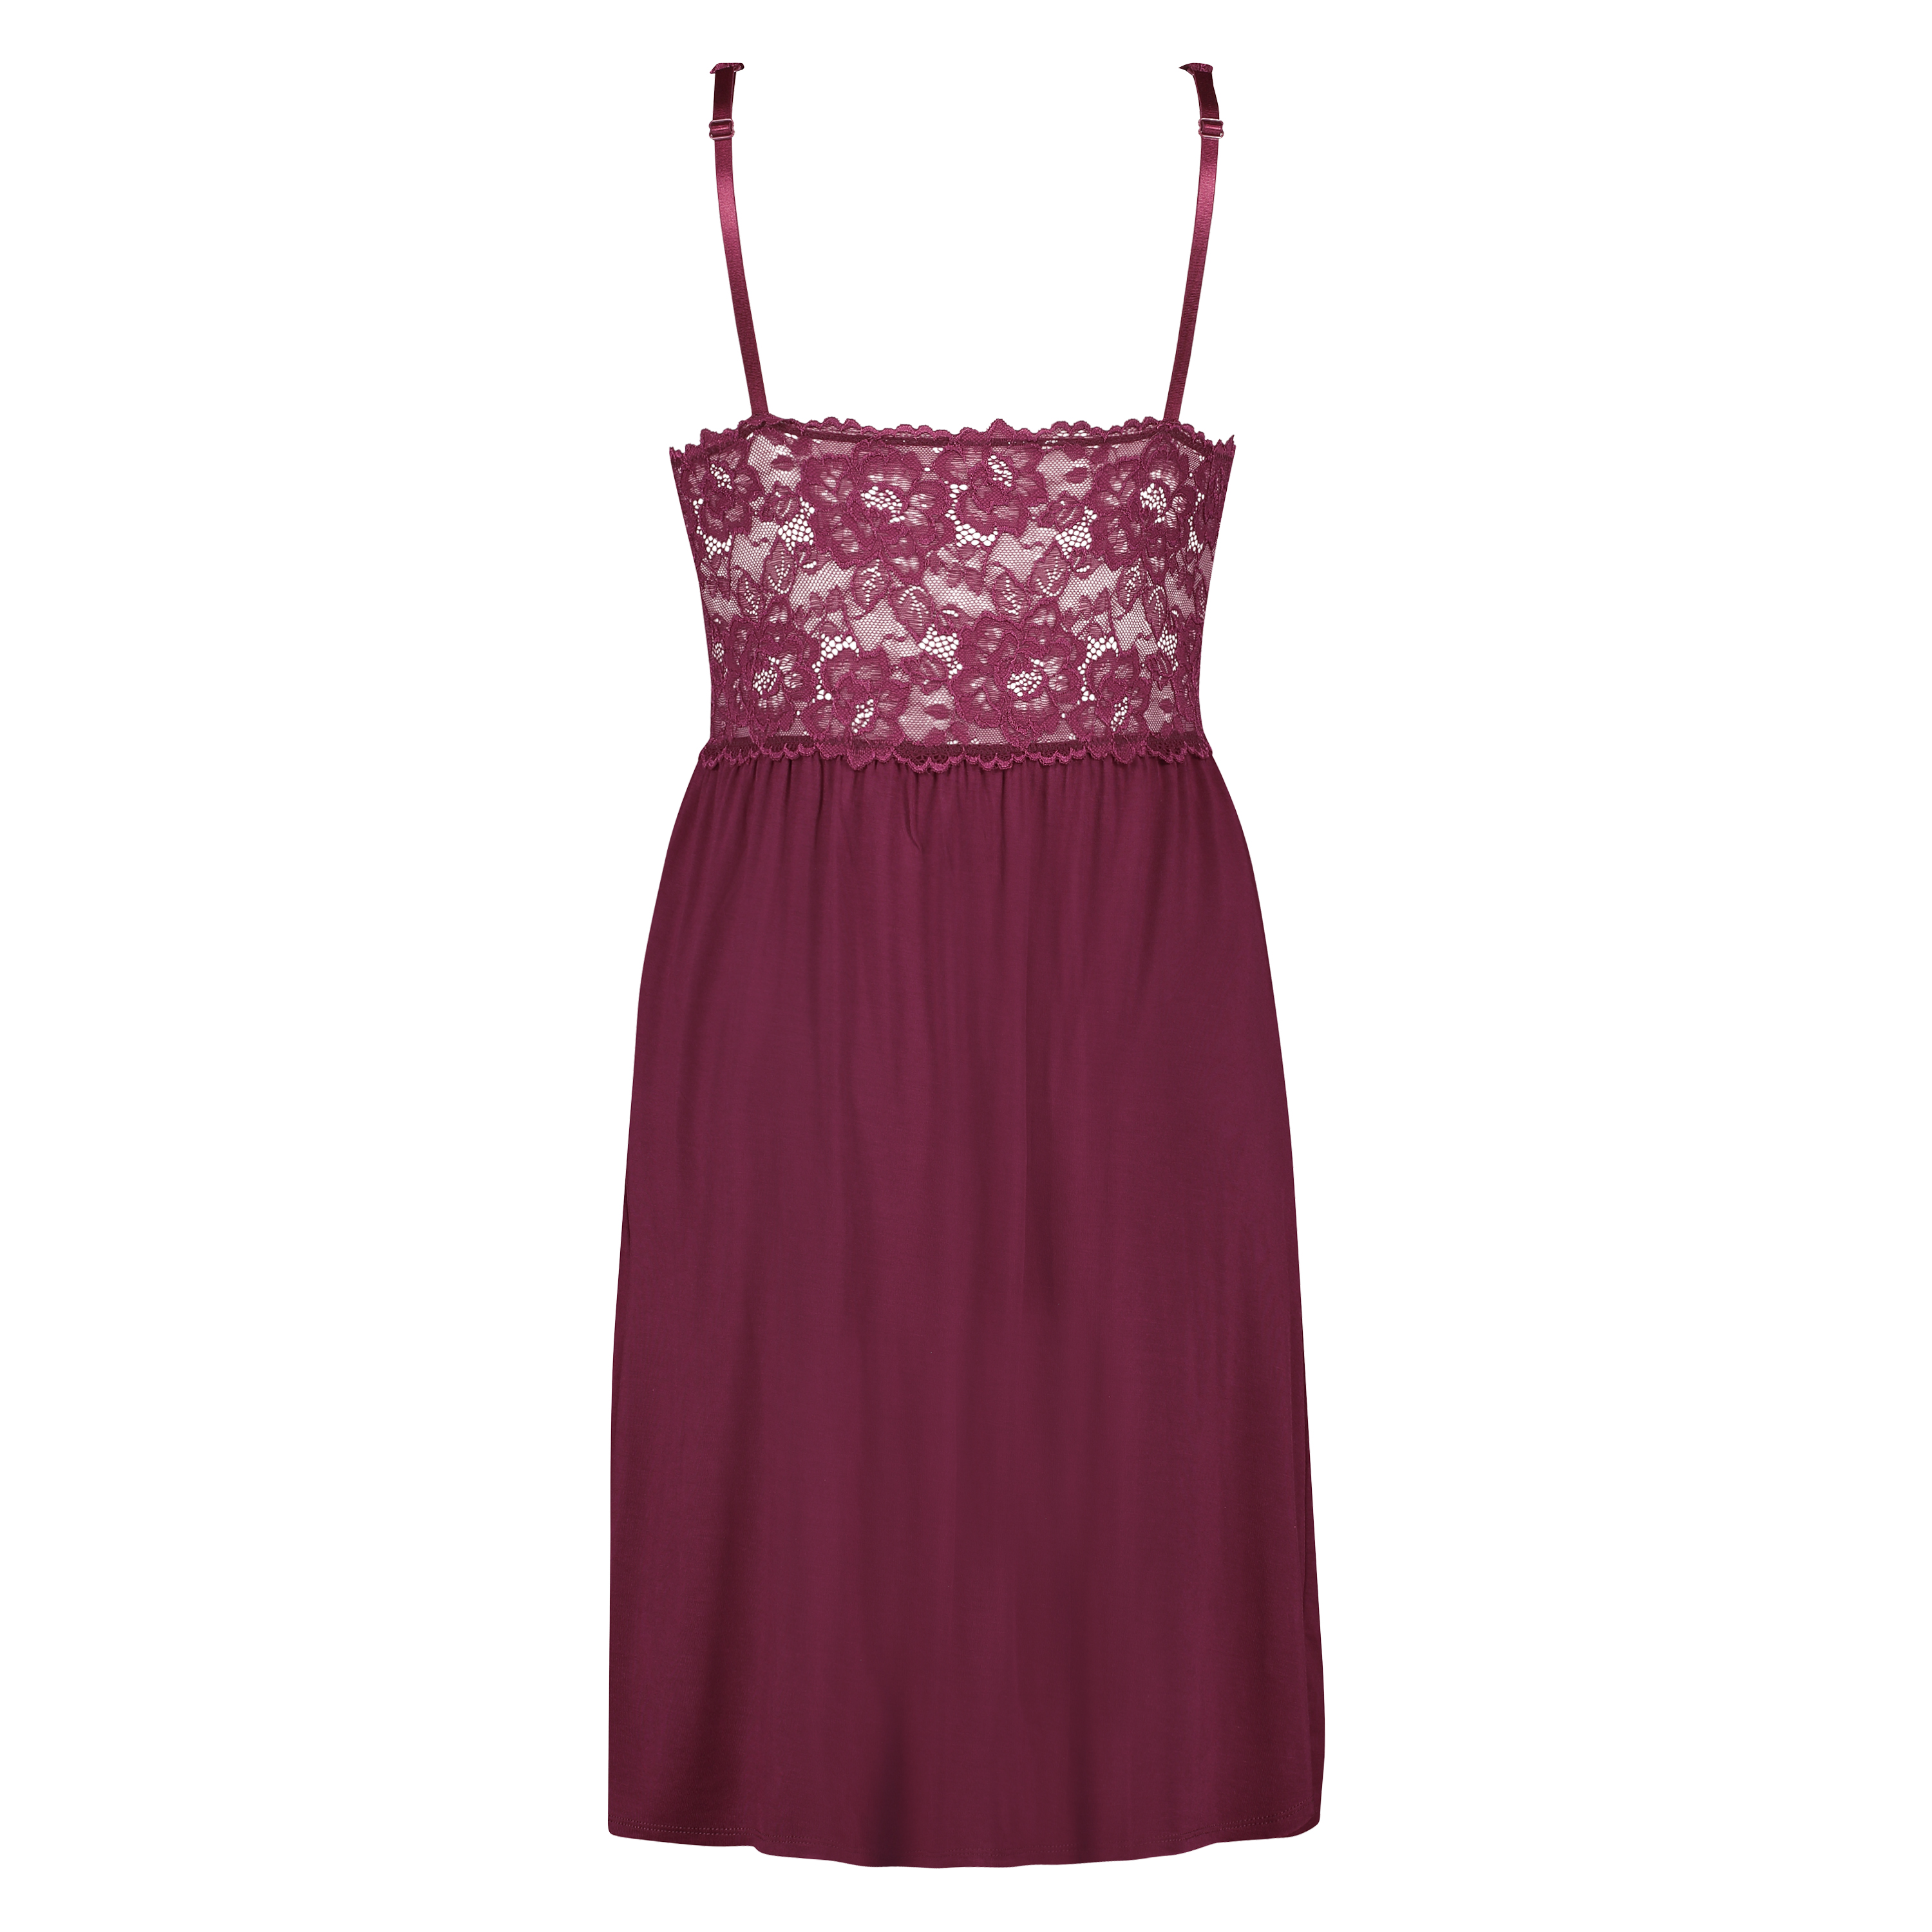 Slipdress Modal lace, Rood, main